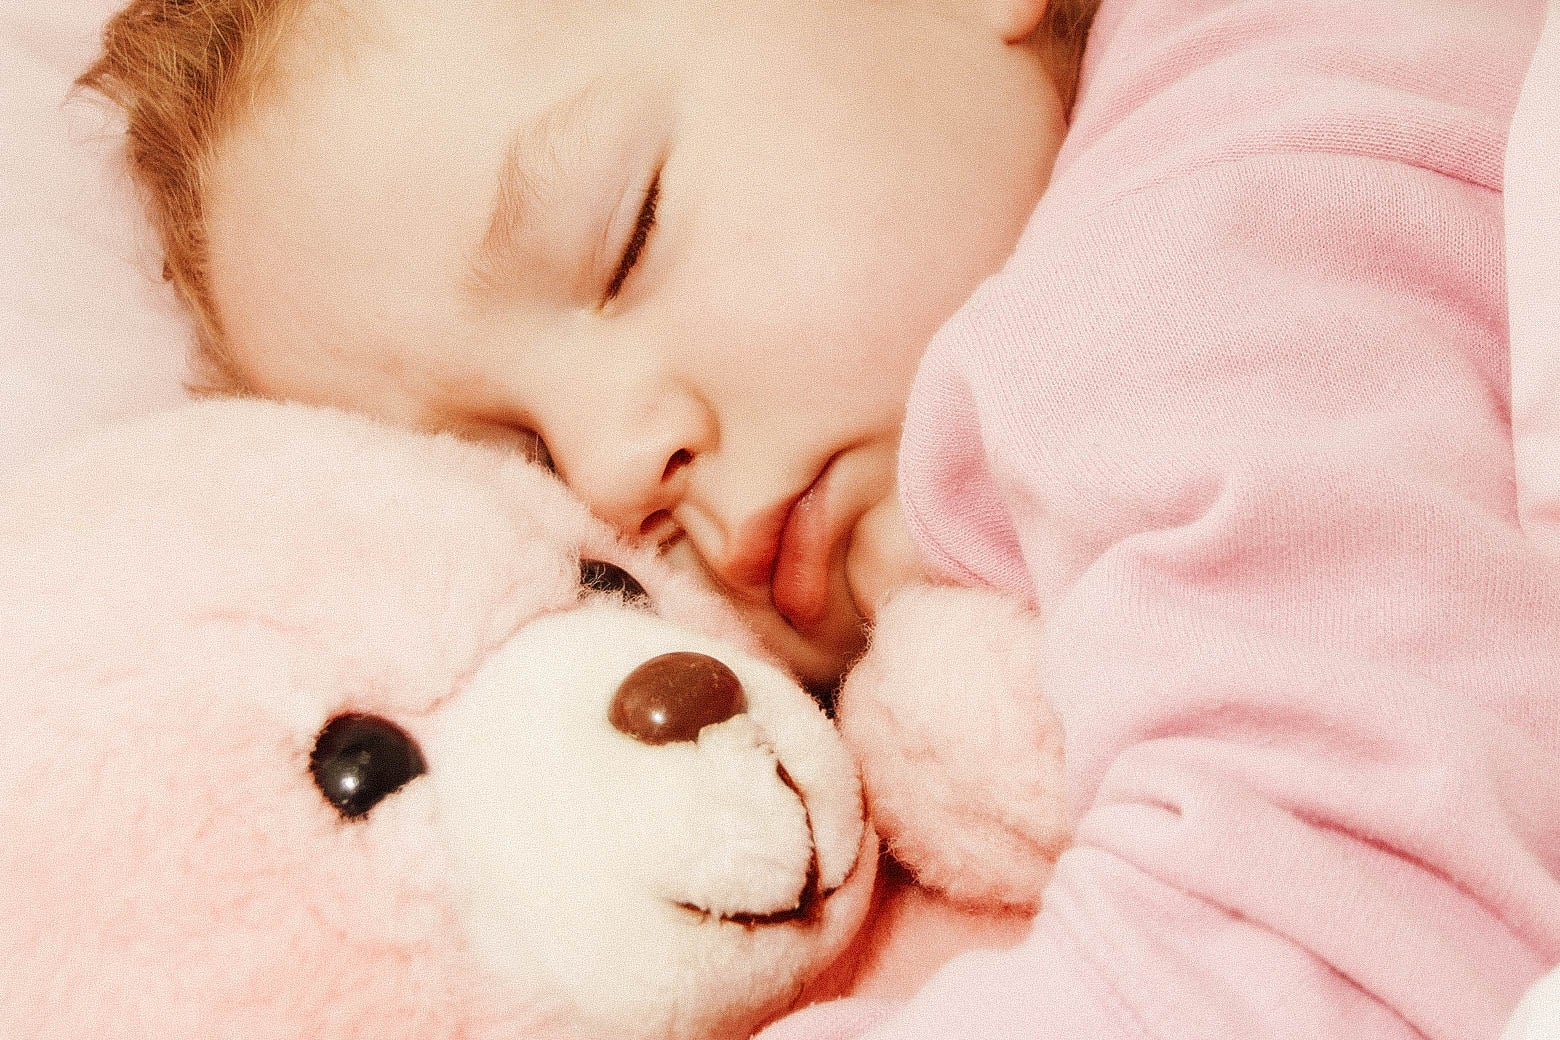 A child in bed with a teddy bear.